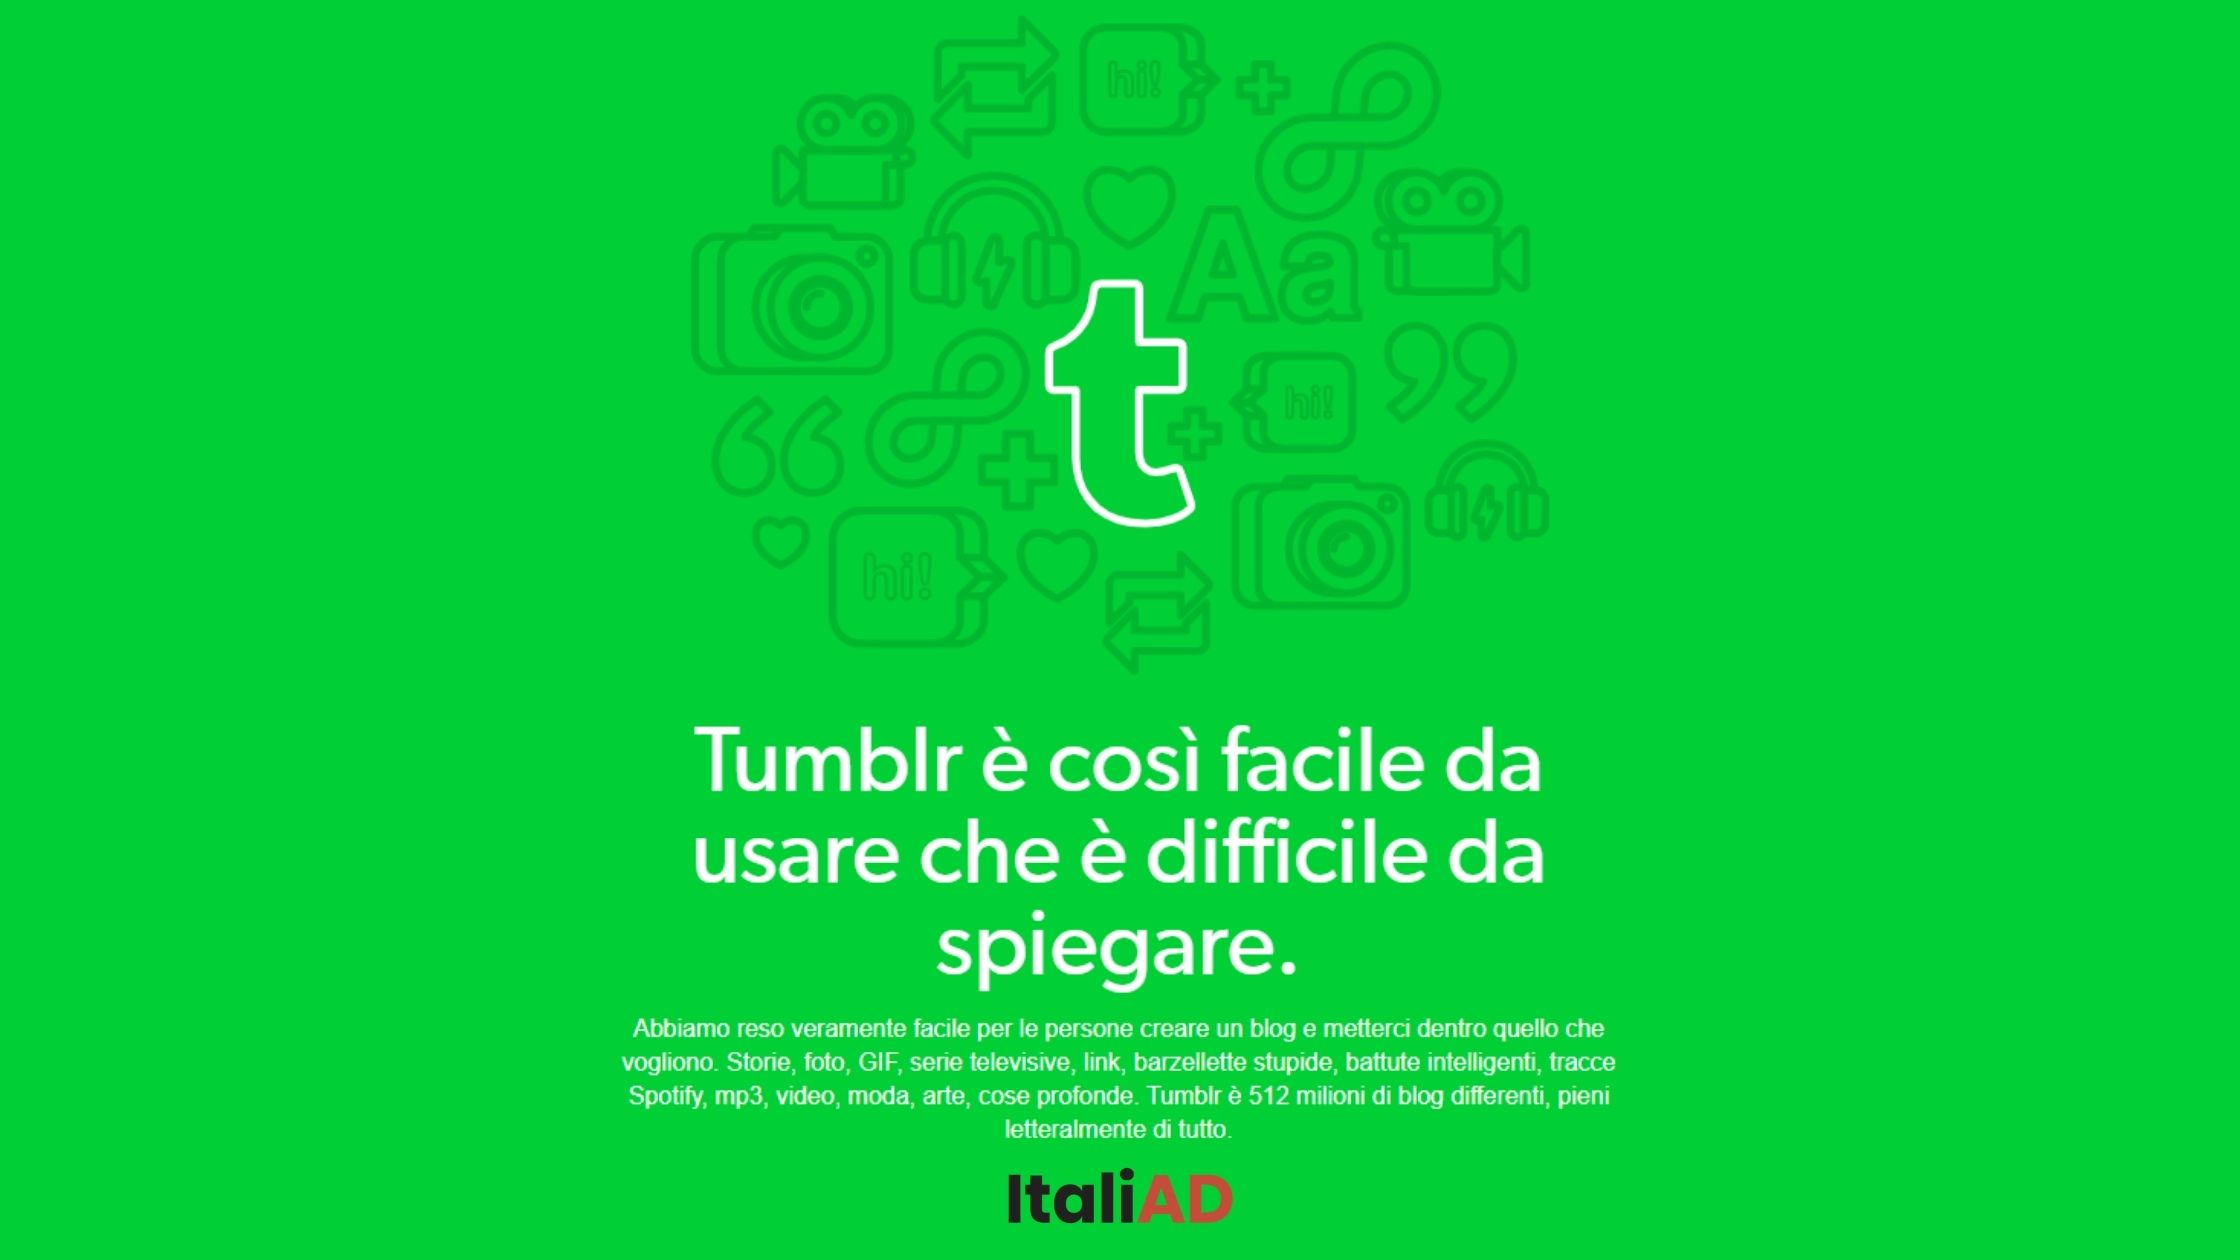 Un po' social network, un po' blog: cos'è Tumblr e come funziona